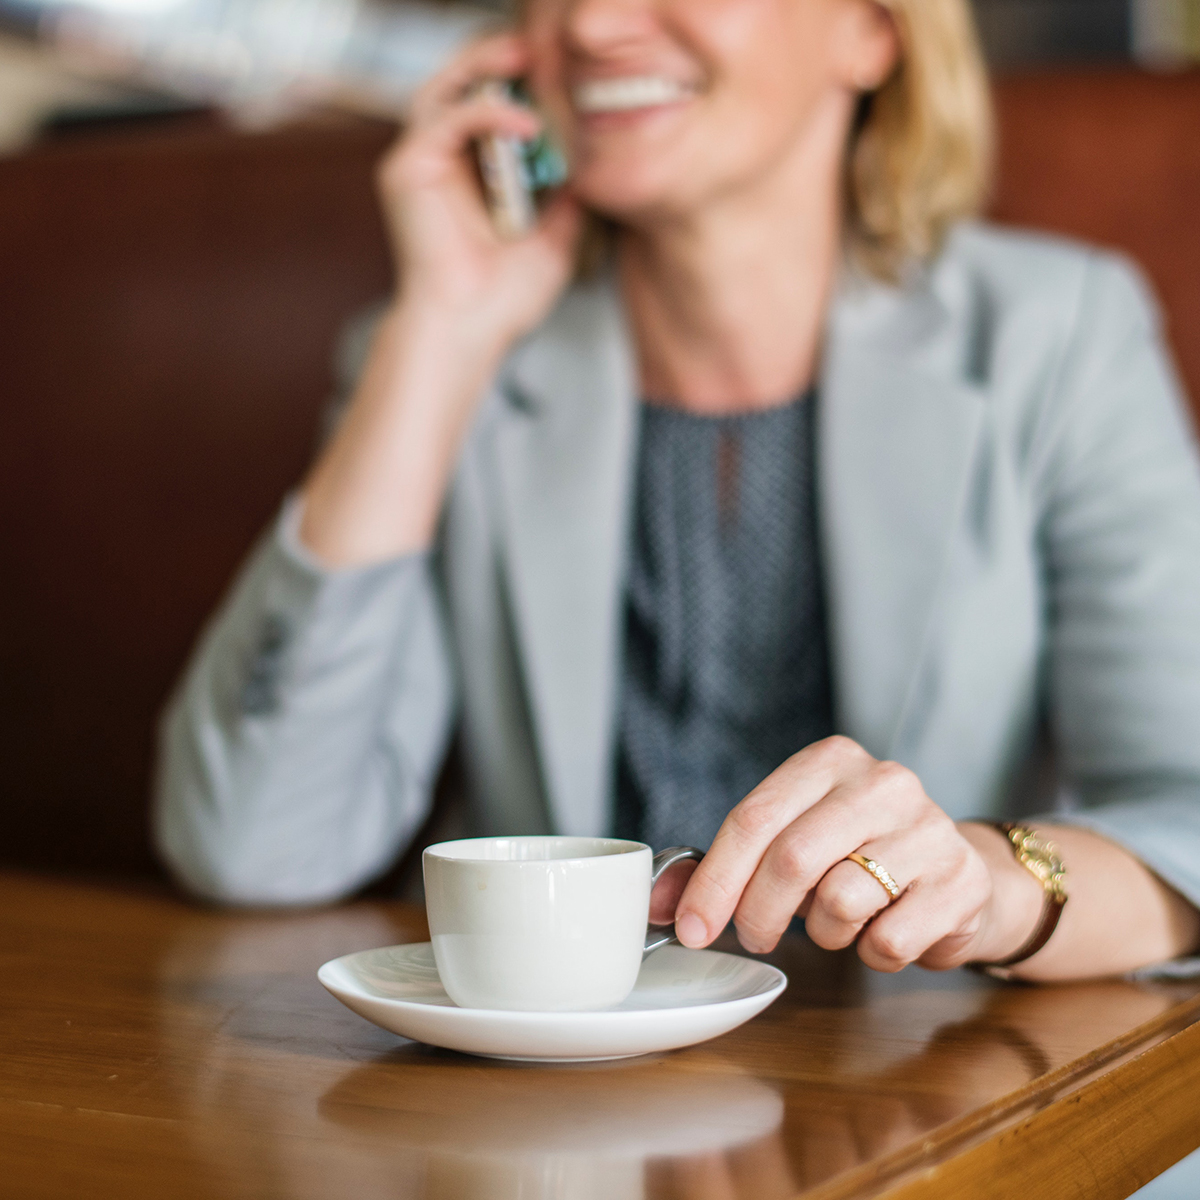 Woman_Drinking_Coffee_Phone_Midwestern_Financial_Fiduciary_Early_Investors.jpg